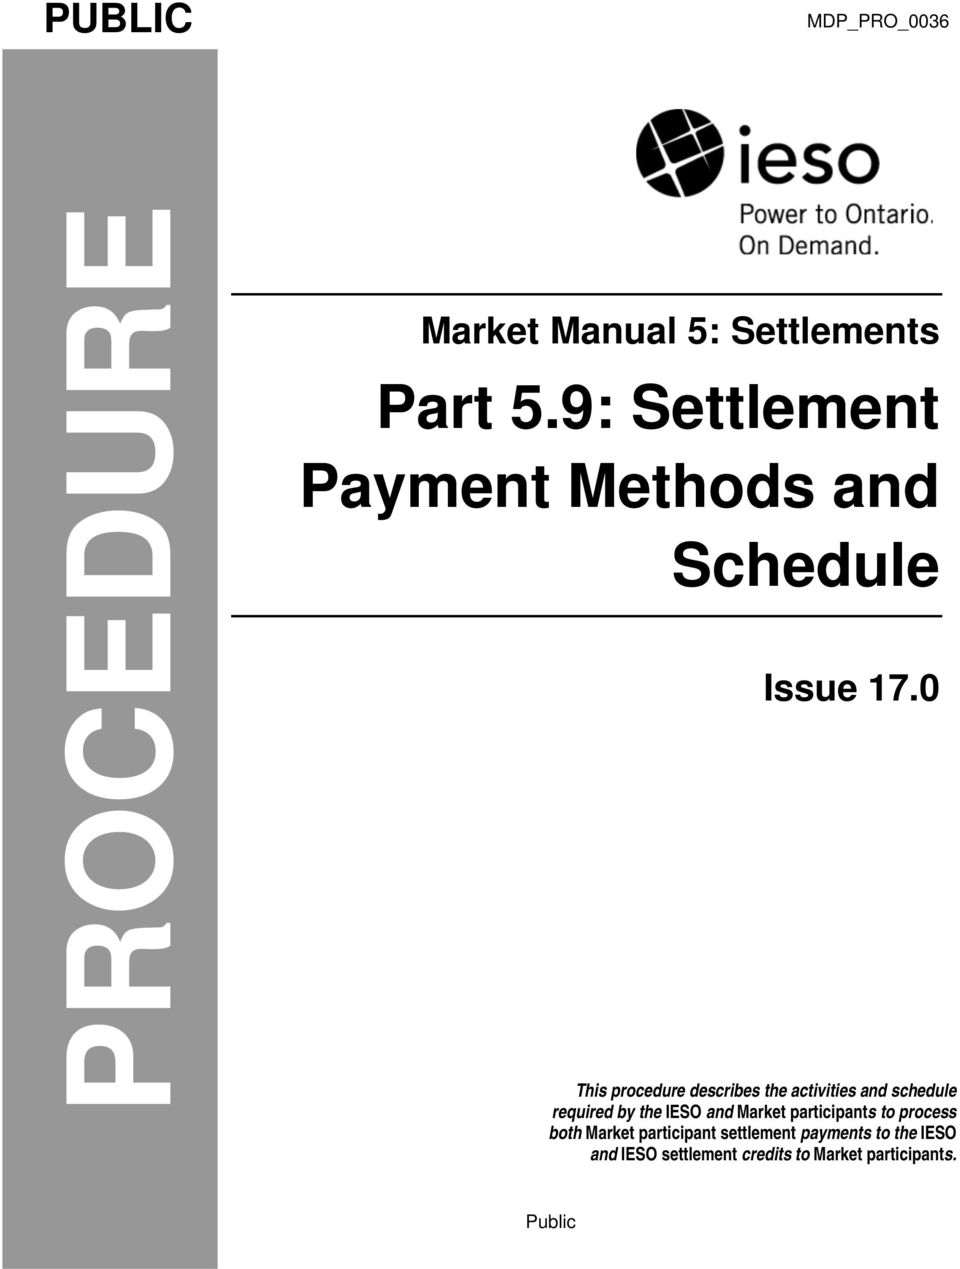 0 This procedure describes the activities and schedule required by the IESO and